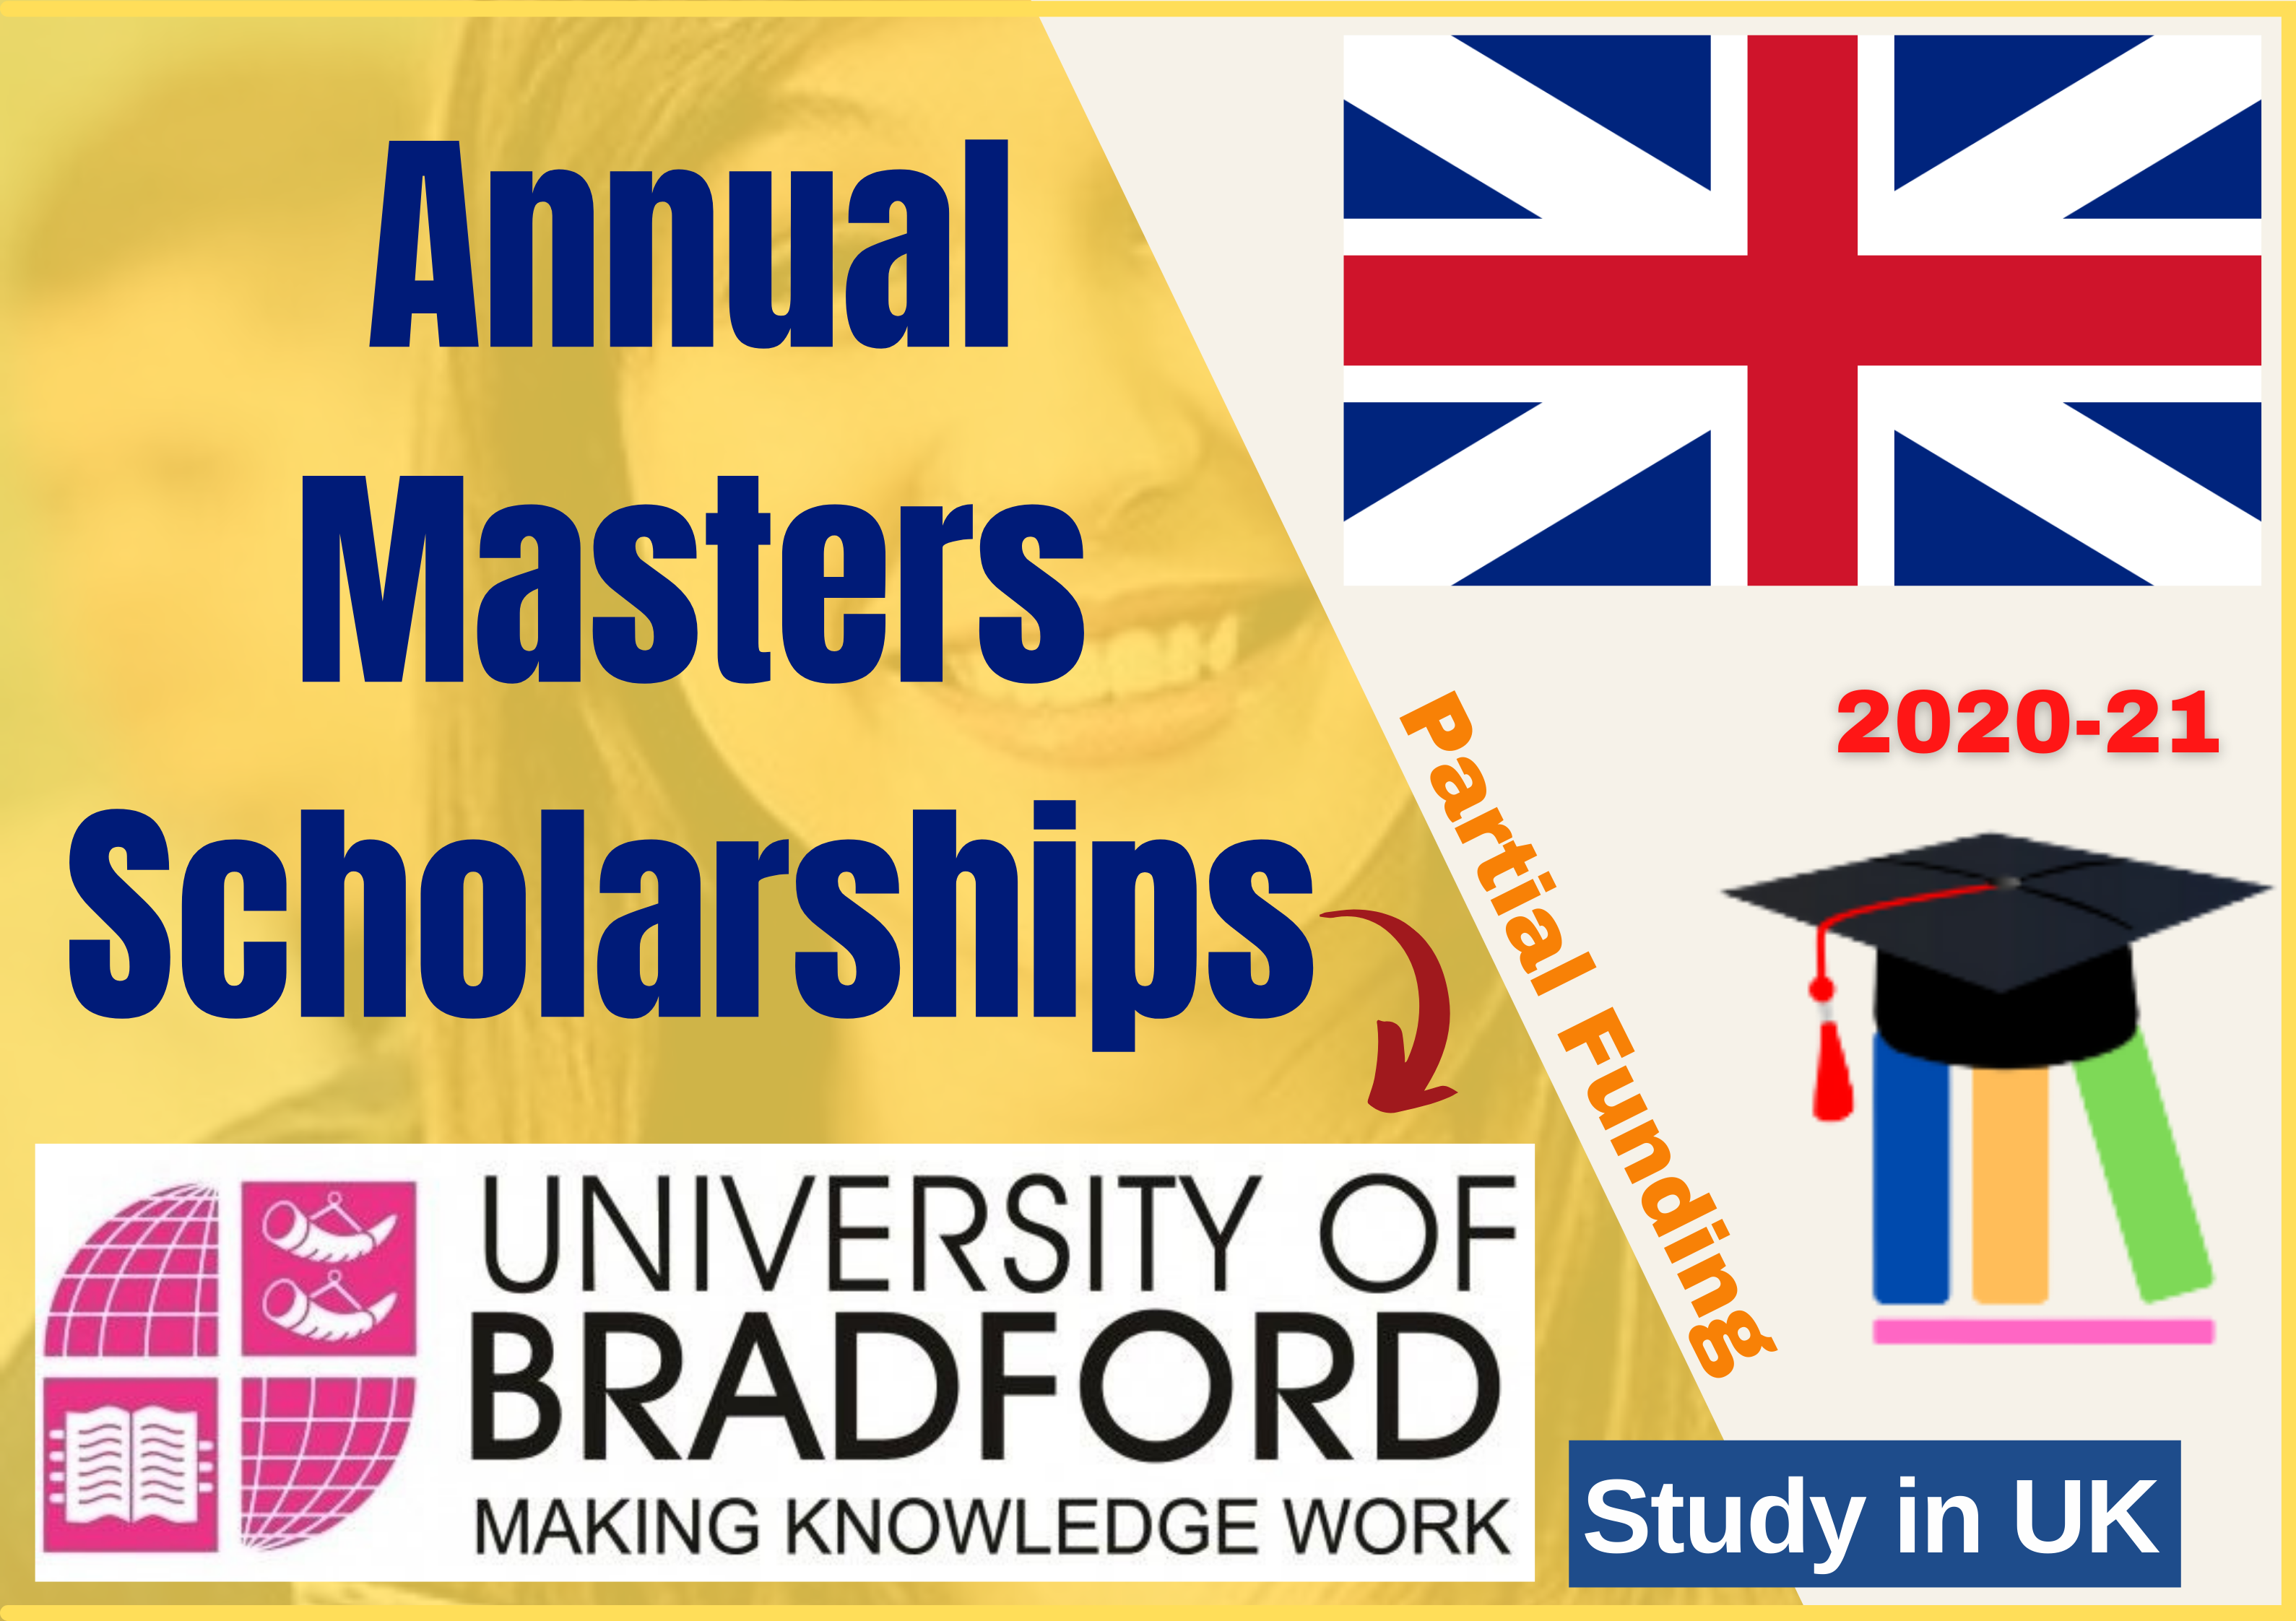 Annual Masters Scholarships Opens by British Government at Bradford University UK